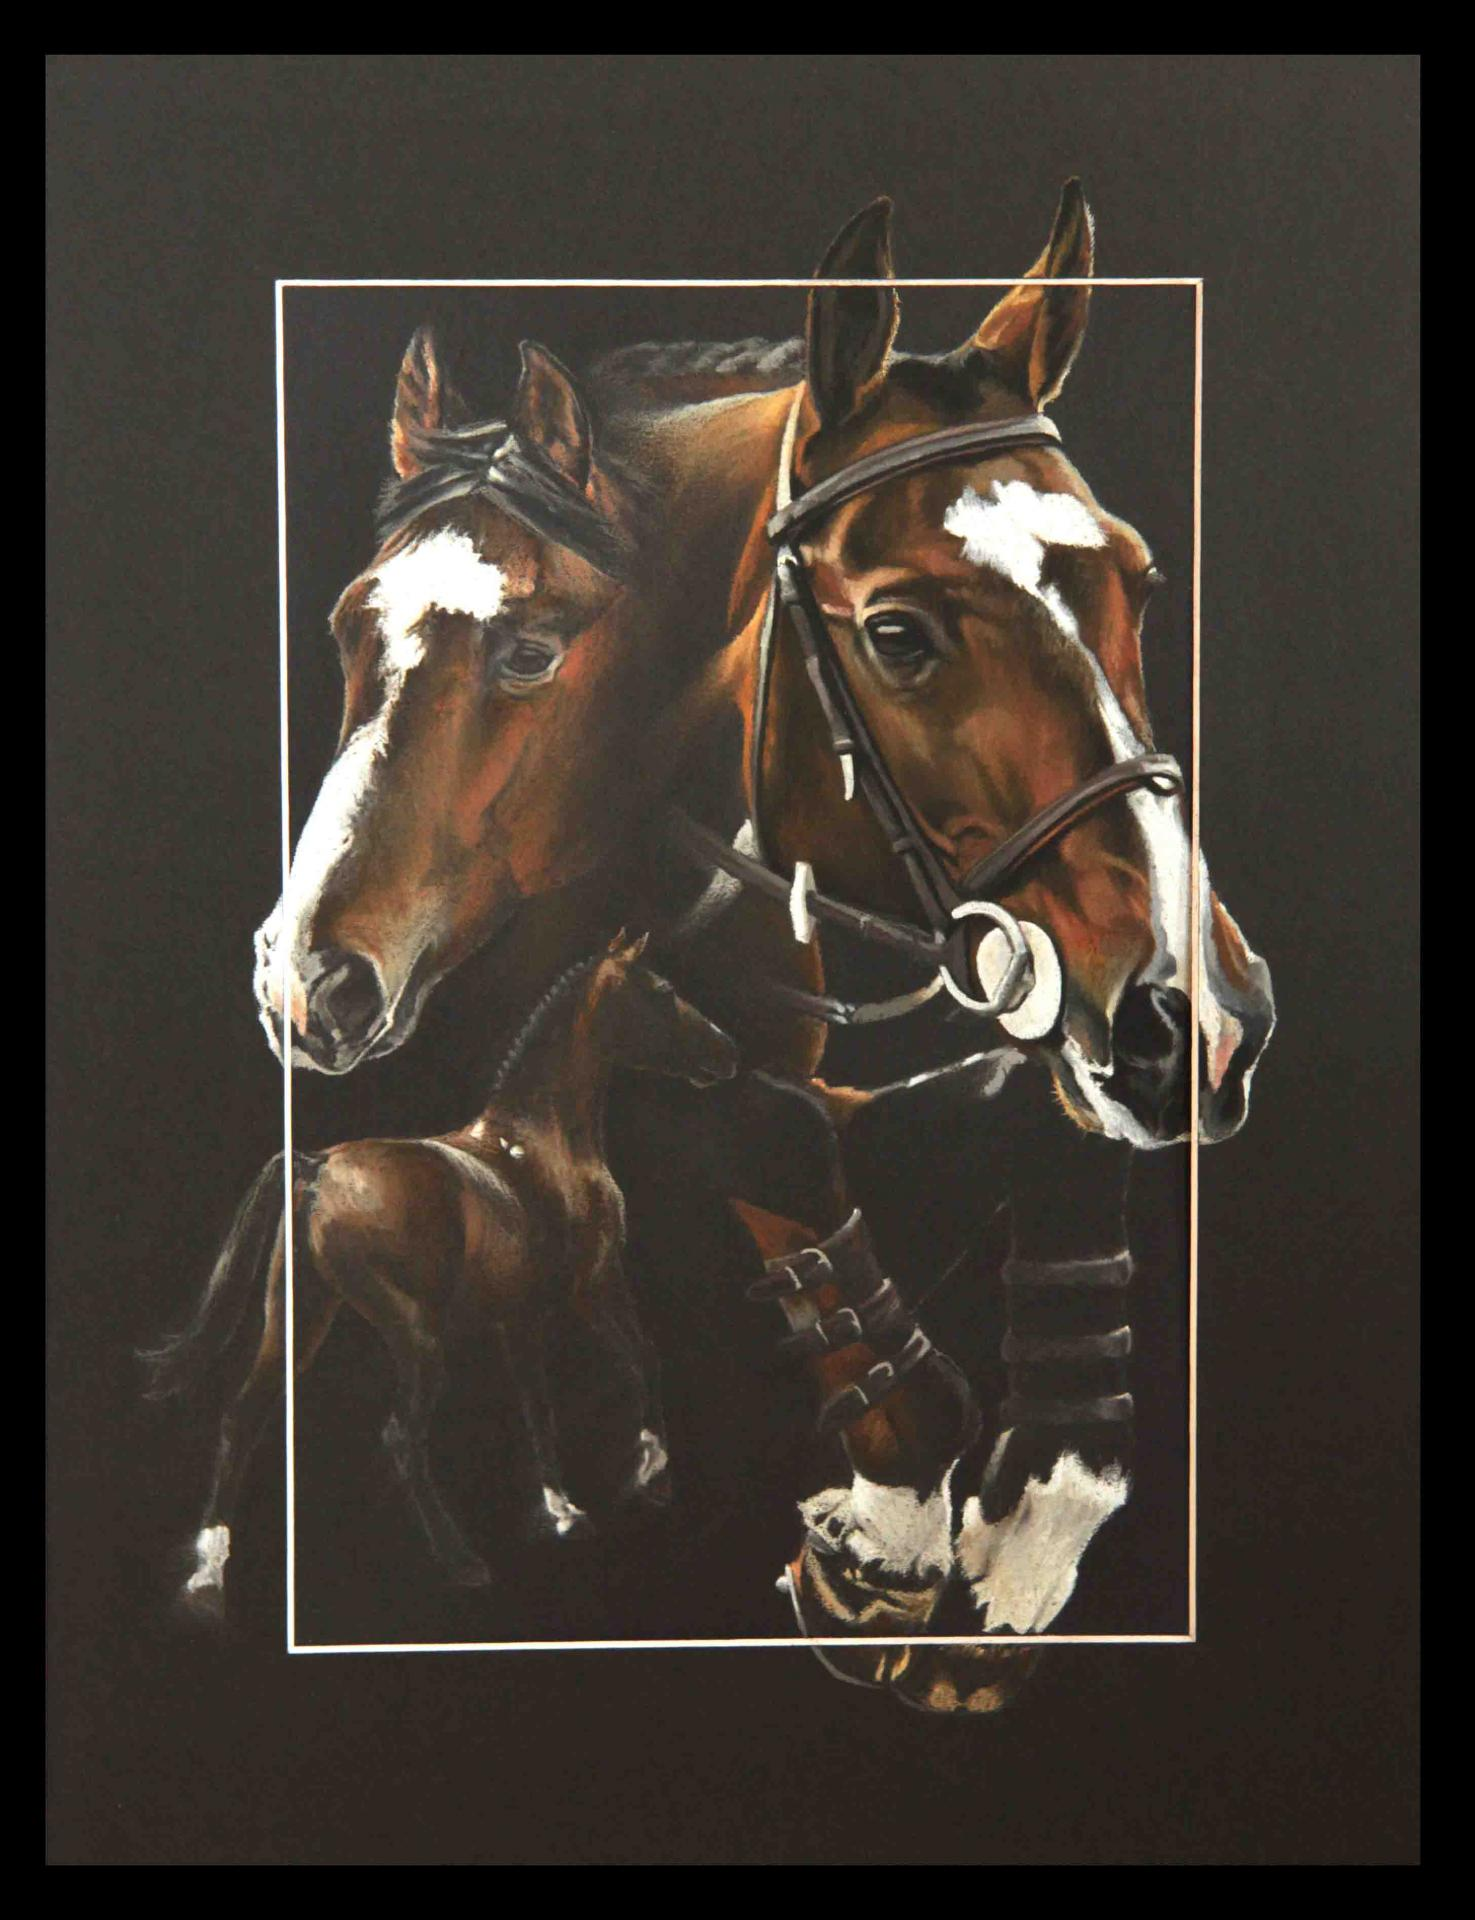 PAPILLON ROUGE, ETALON PRIVE (private stallion) -- 30x40cm